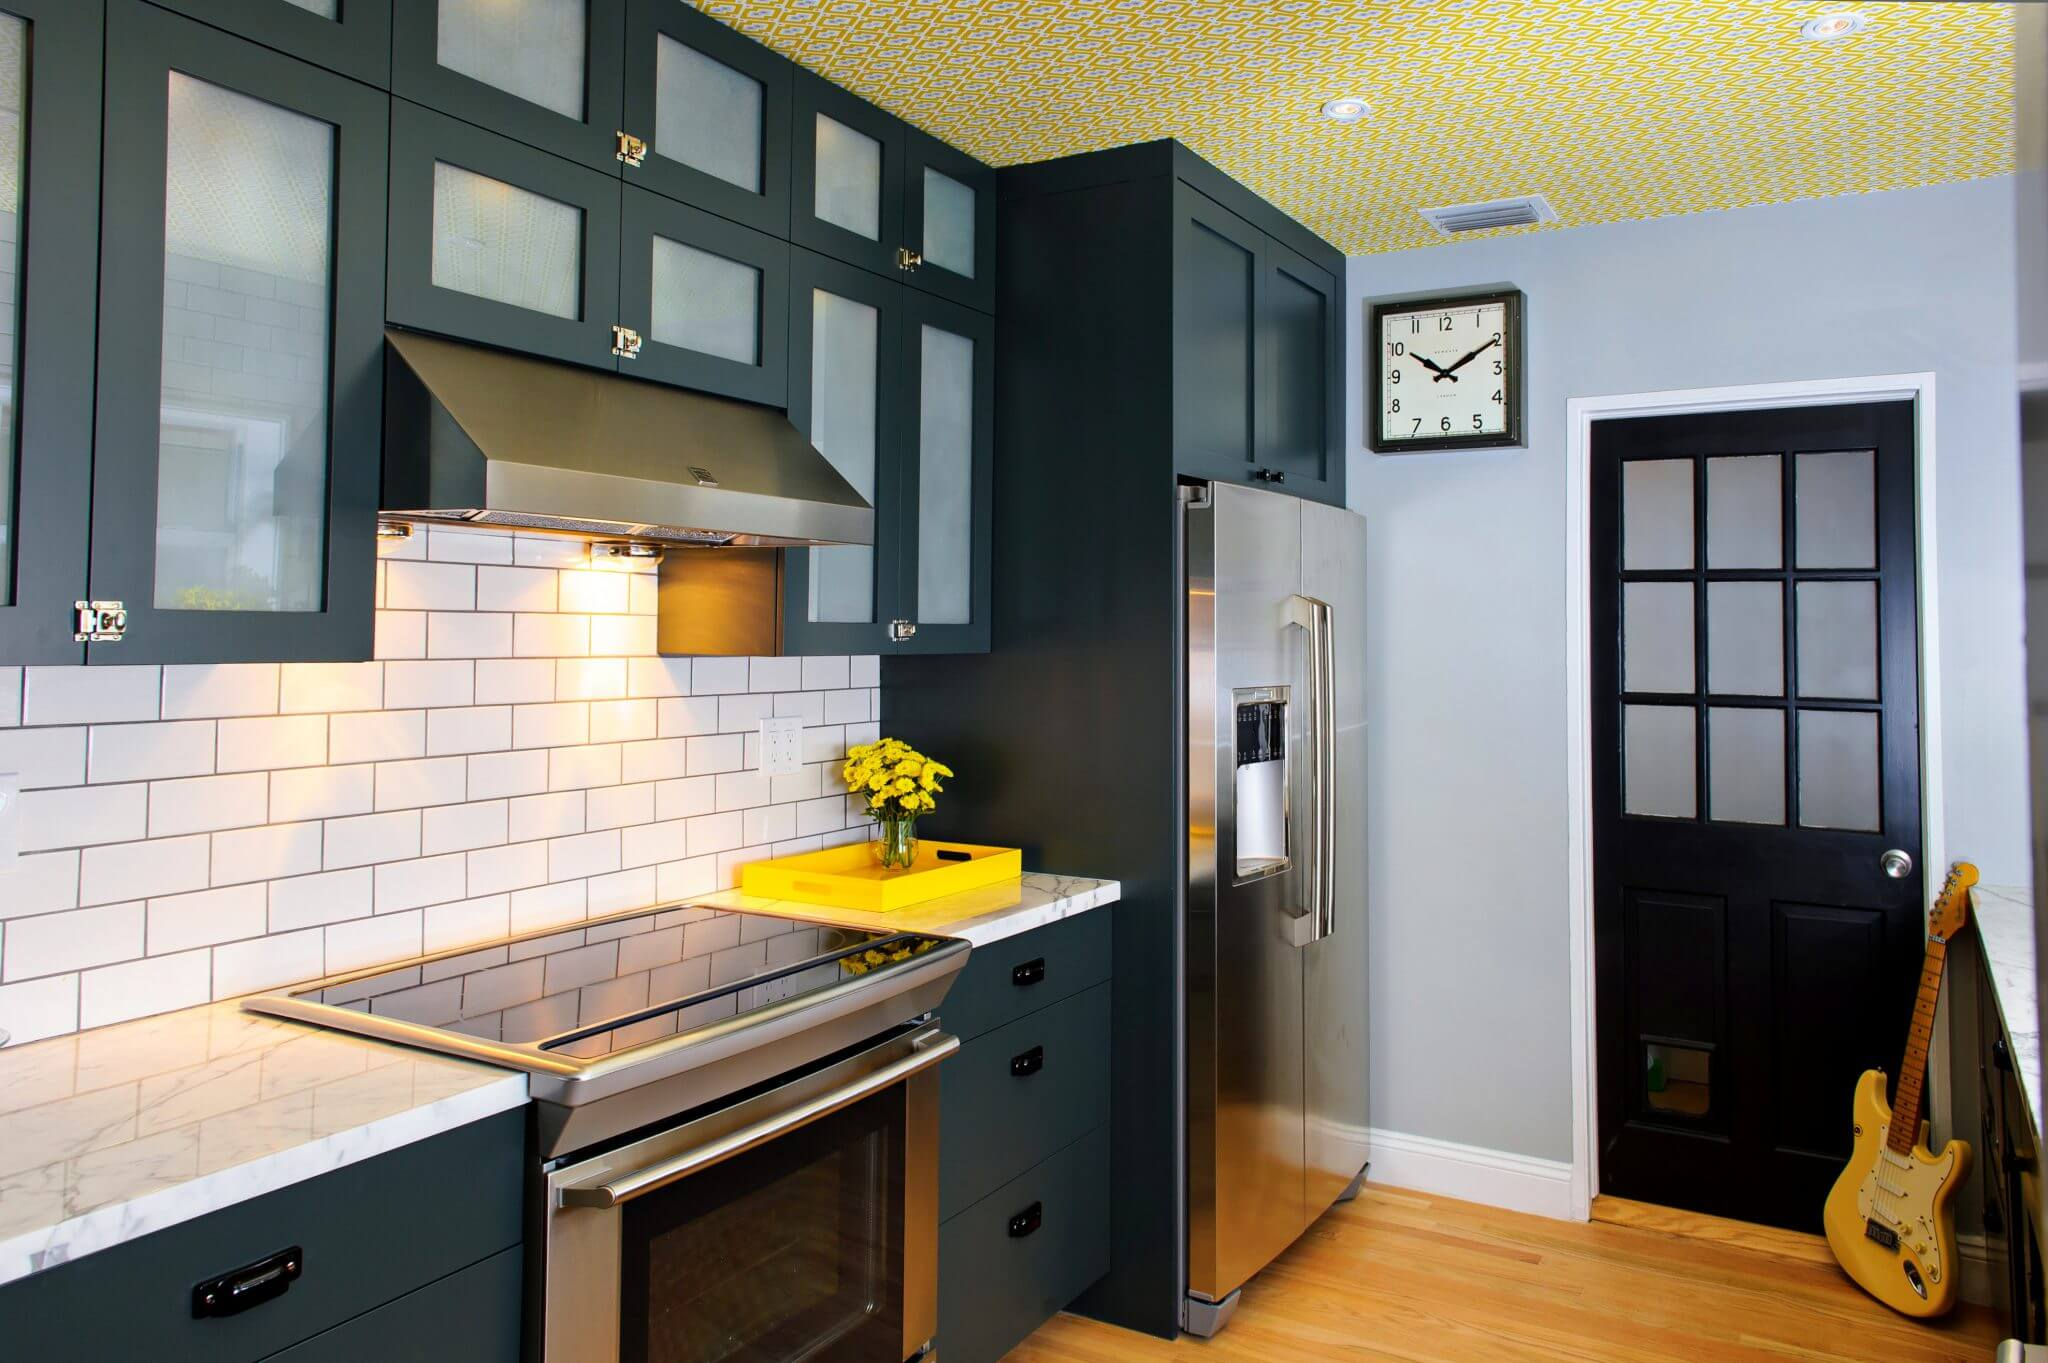 20 Best Paint Colors for Kitchens 2018 - Interior ...